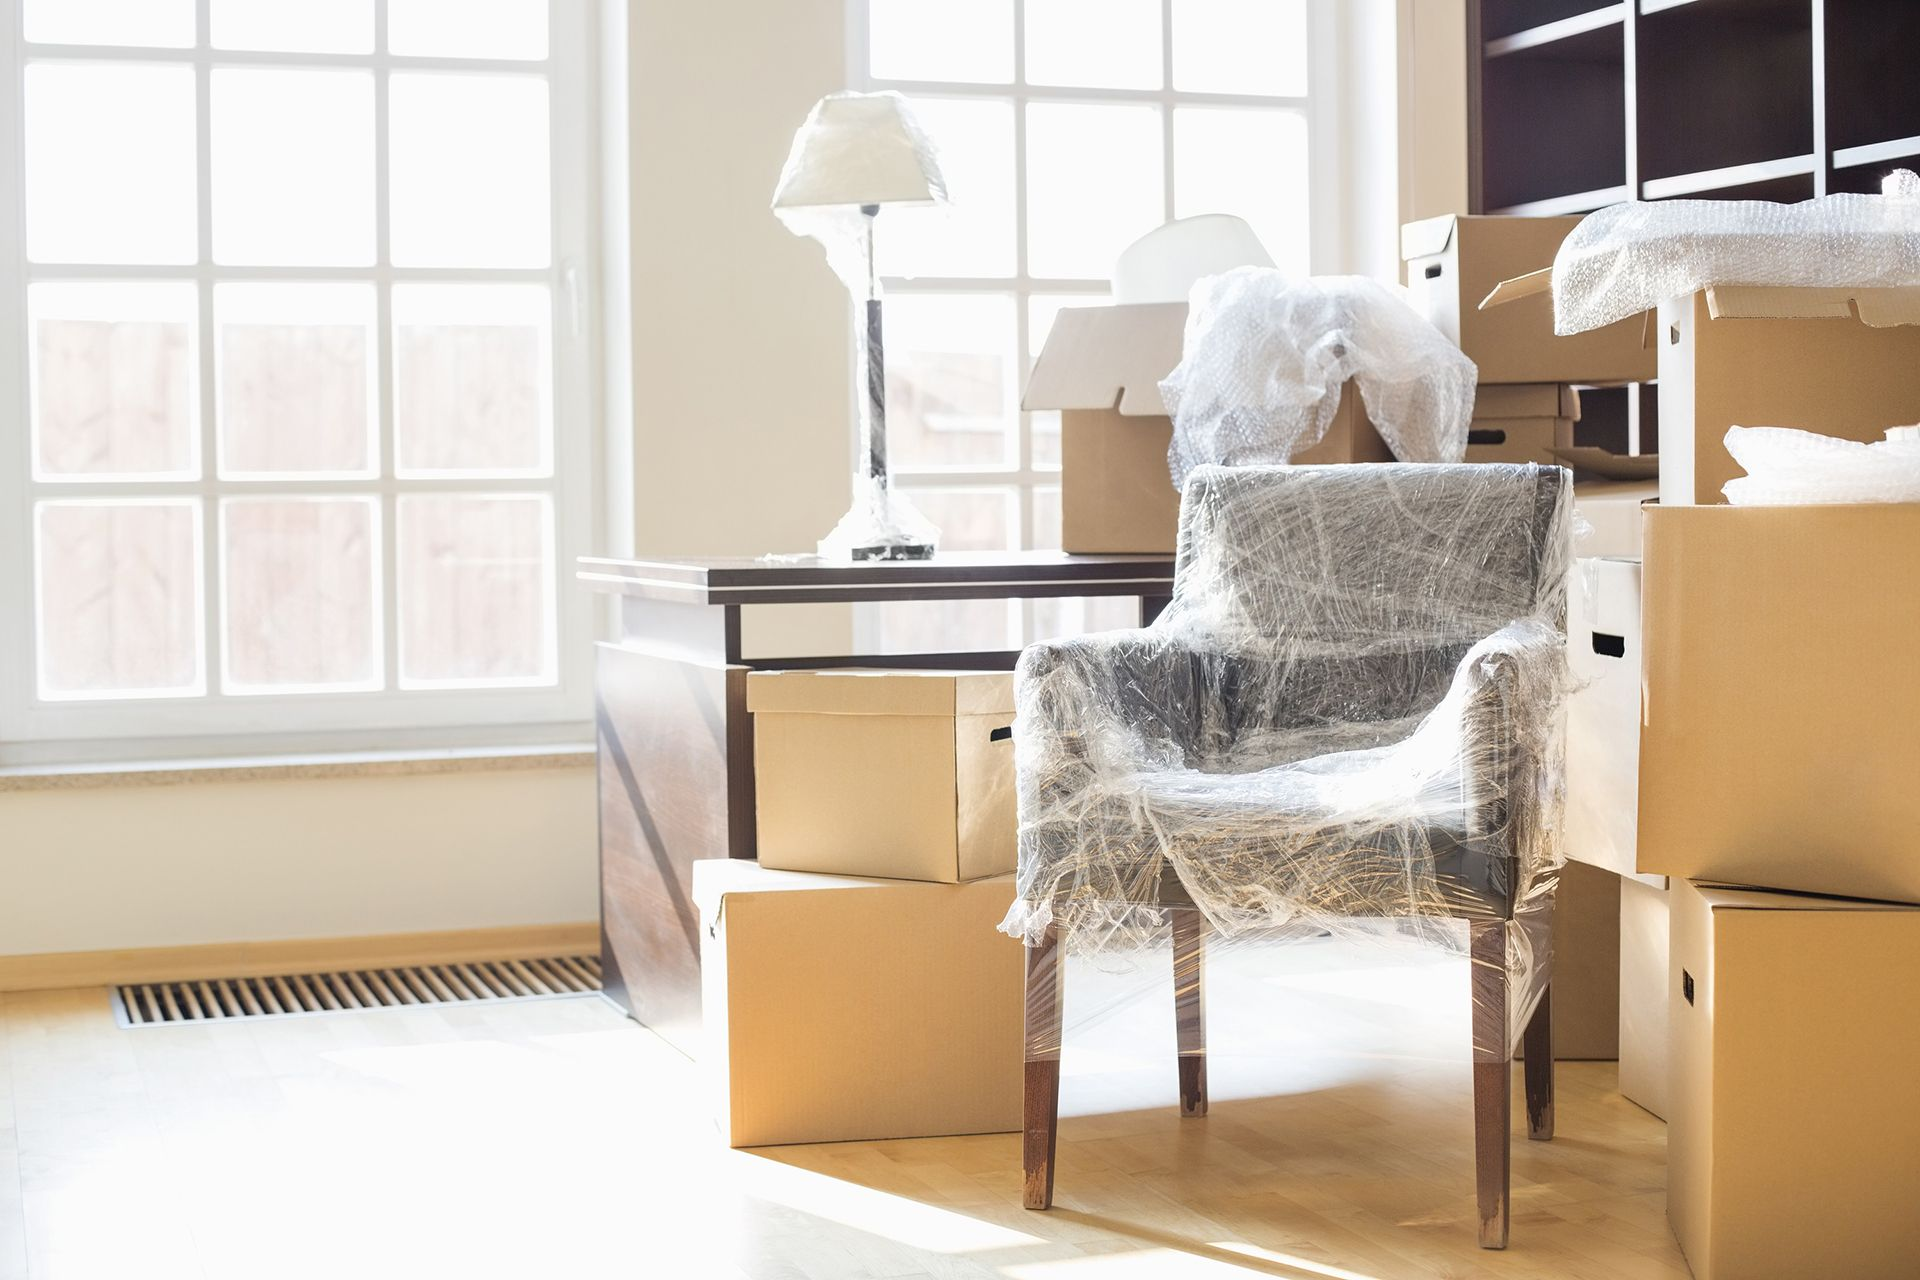 With the right tips for moving (and the right priorities on your to-do list), you can be organized, packed and loaded on that moving truck in no time.